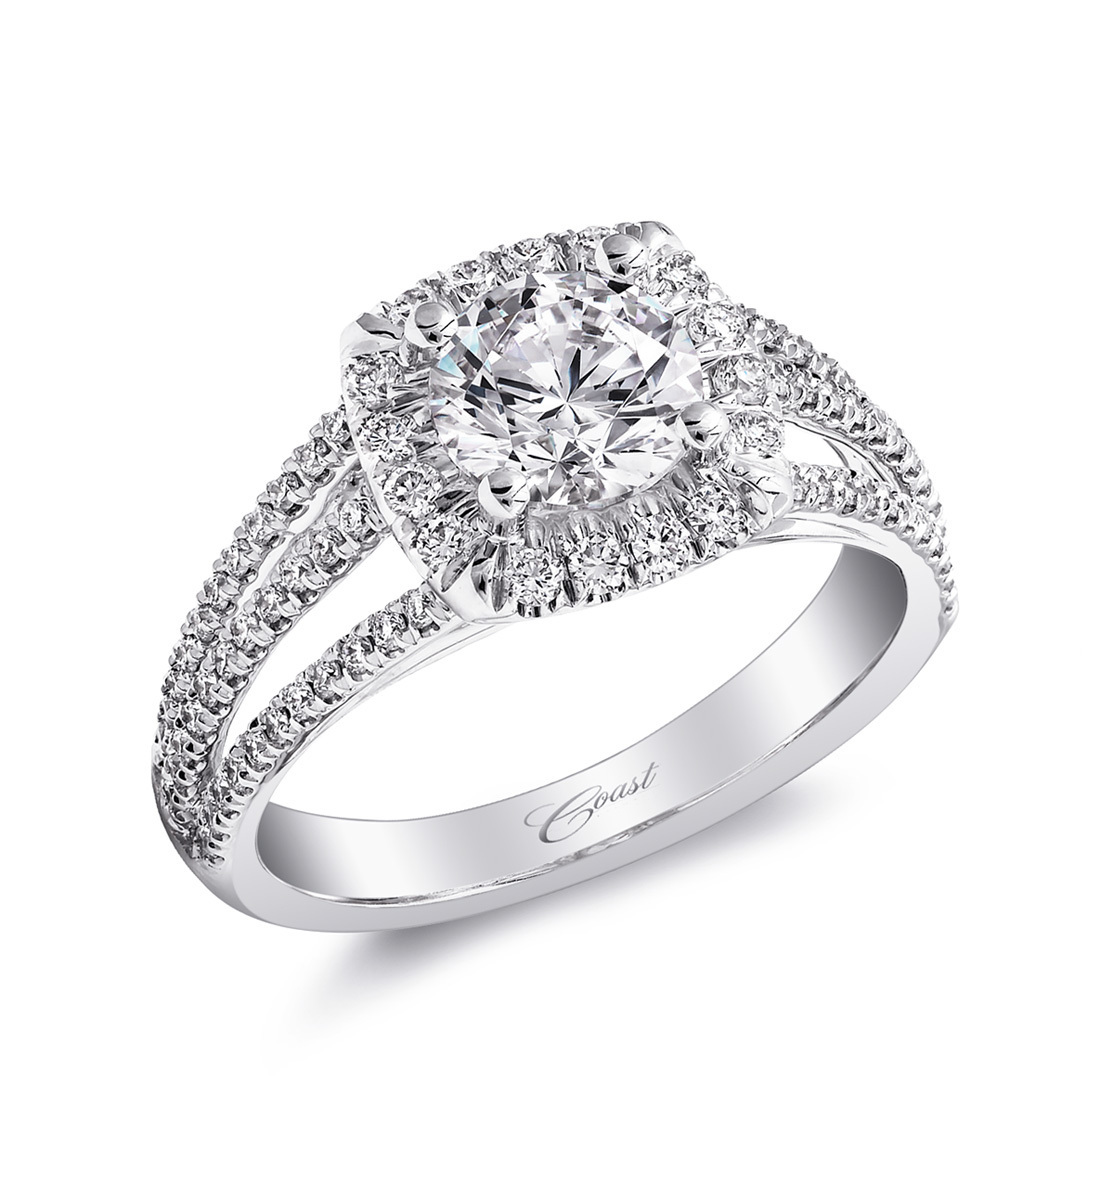 Charisma Engagement Ring - Triple Split Shank